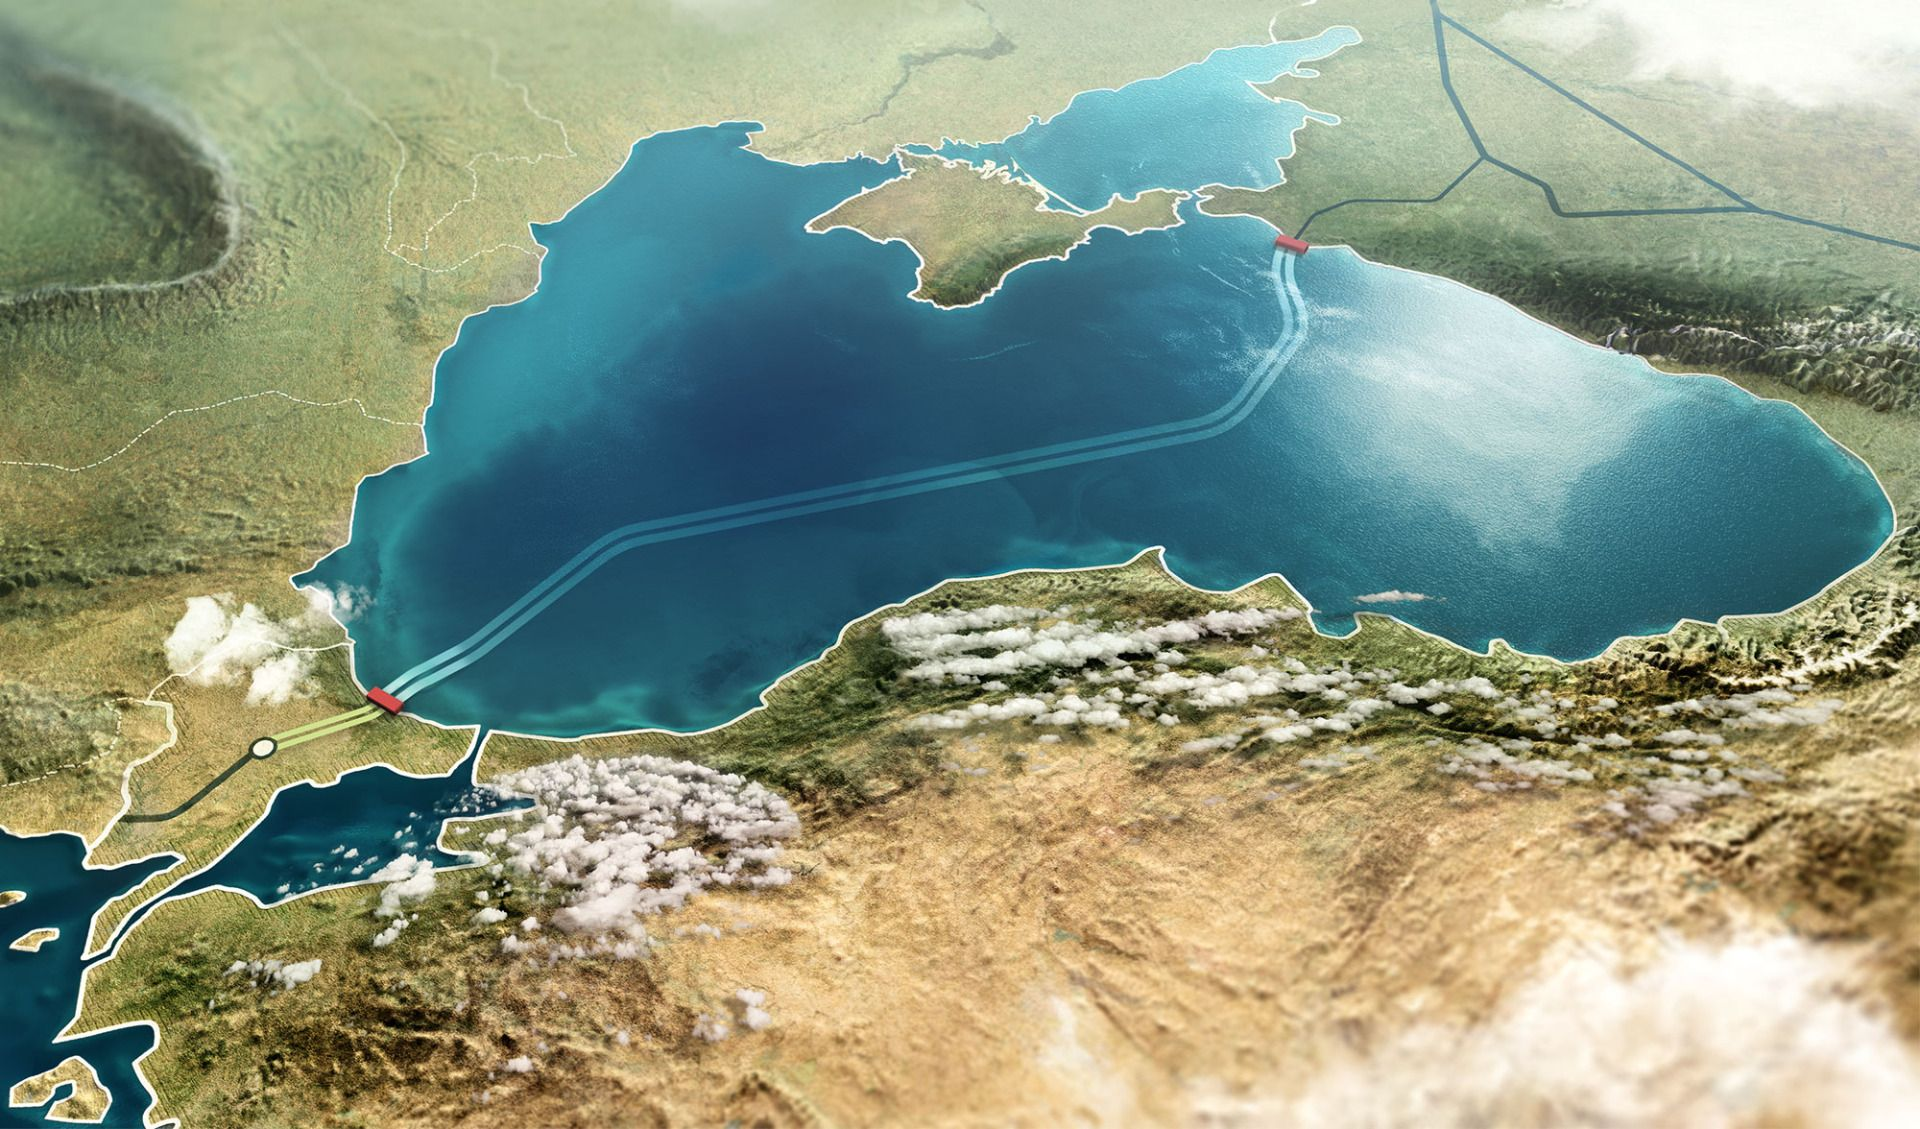 The TurkStream Project